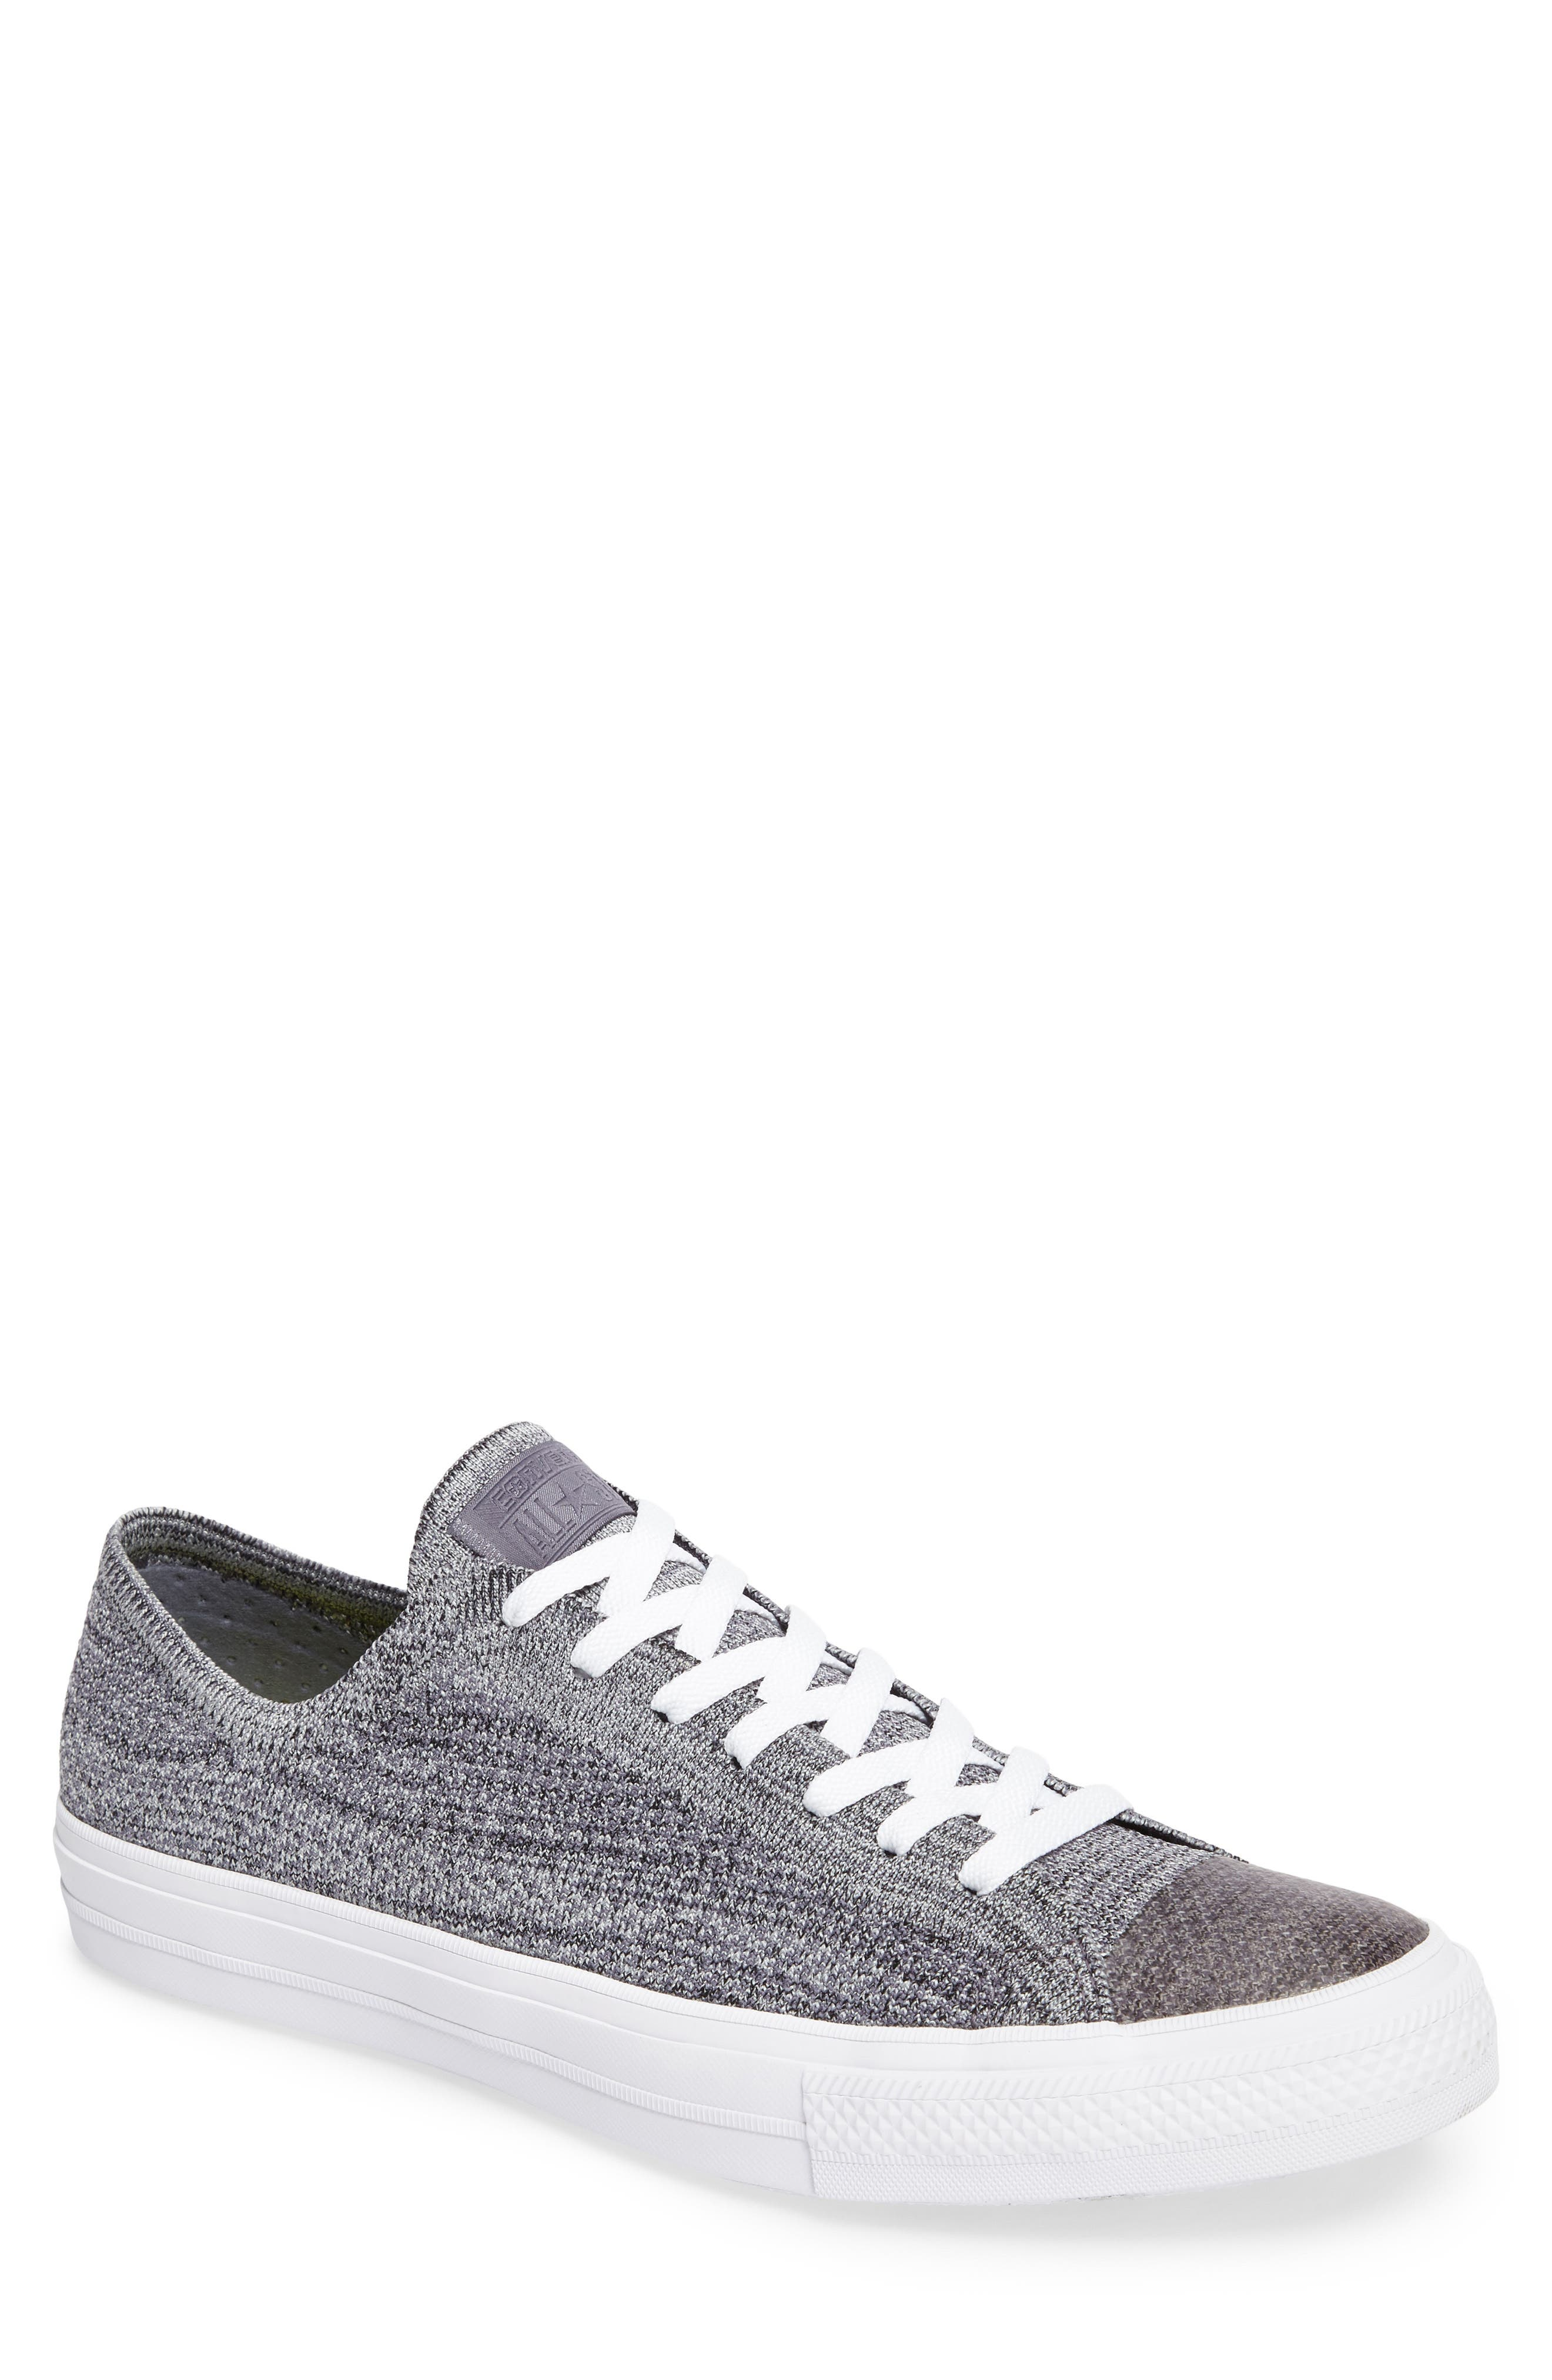 Chuck Taylor<sup>®</sup> All Star<sup>®</sup> Flyknit Sneaker,                             Main thumbnail 1, color,                             027